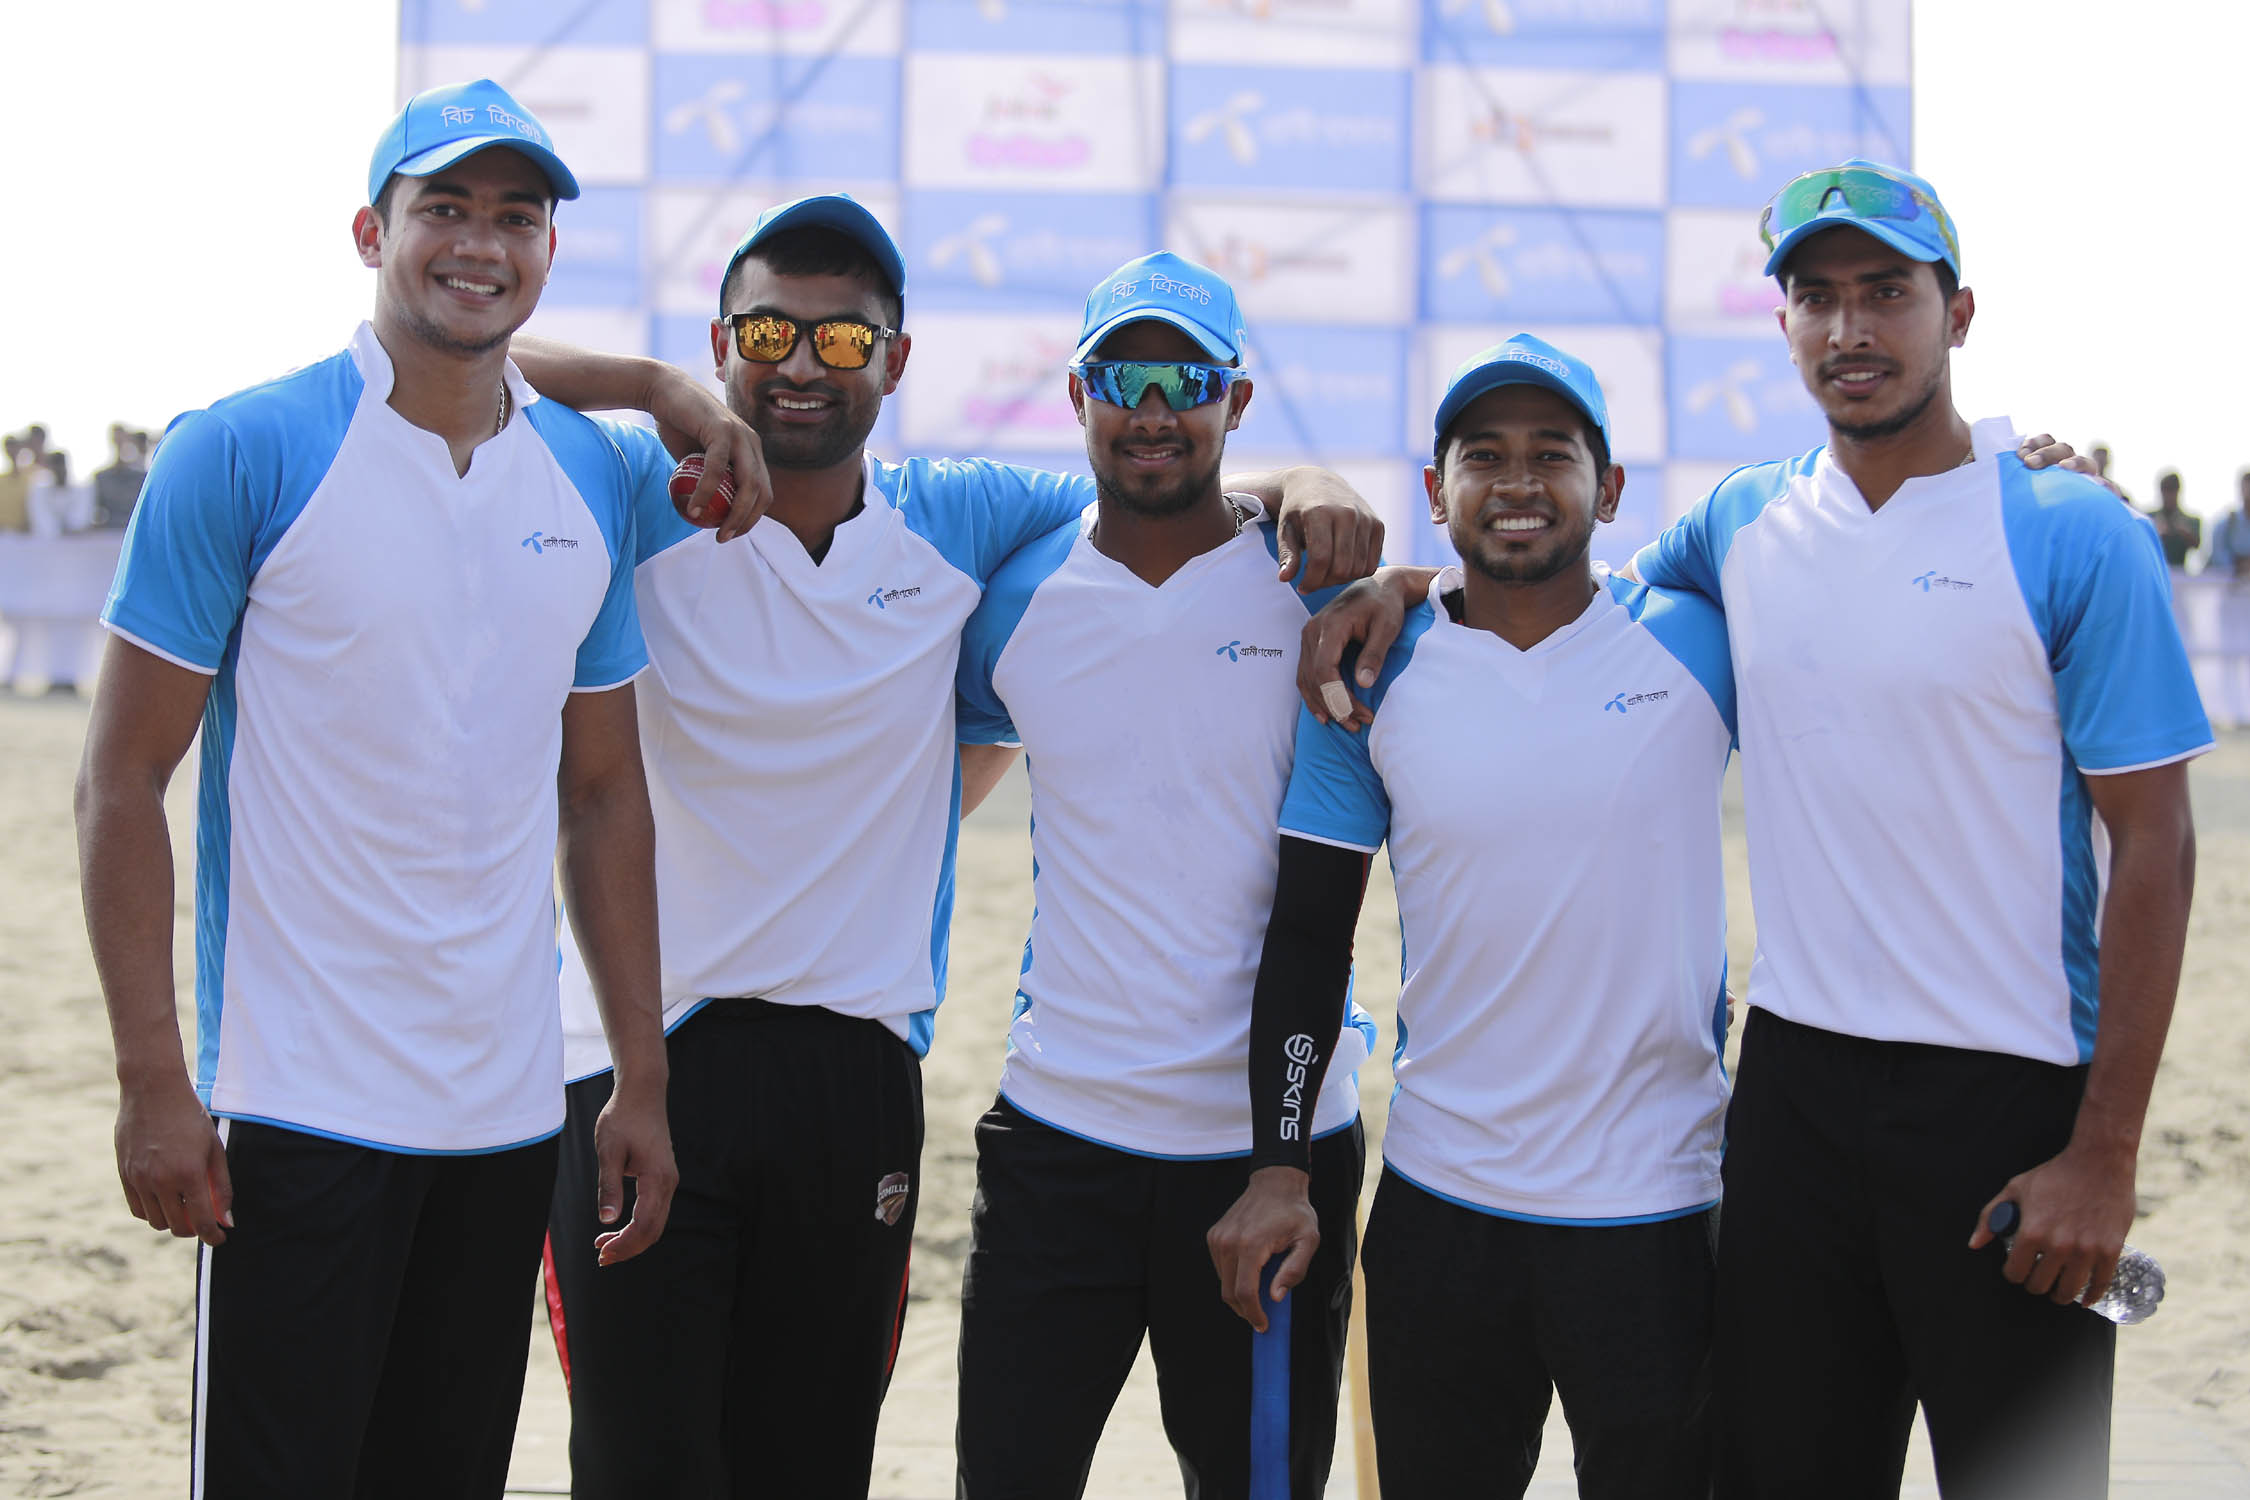 The national cricketers pose for a photo session before taking part in the exhibition cricket match with their fans at the Cox's Bazar Sea Beach on Wednesday.